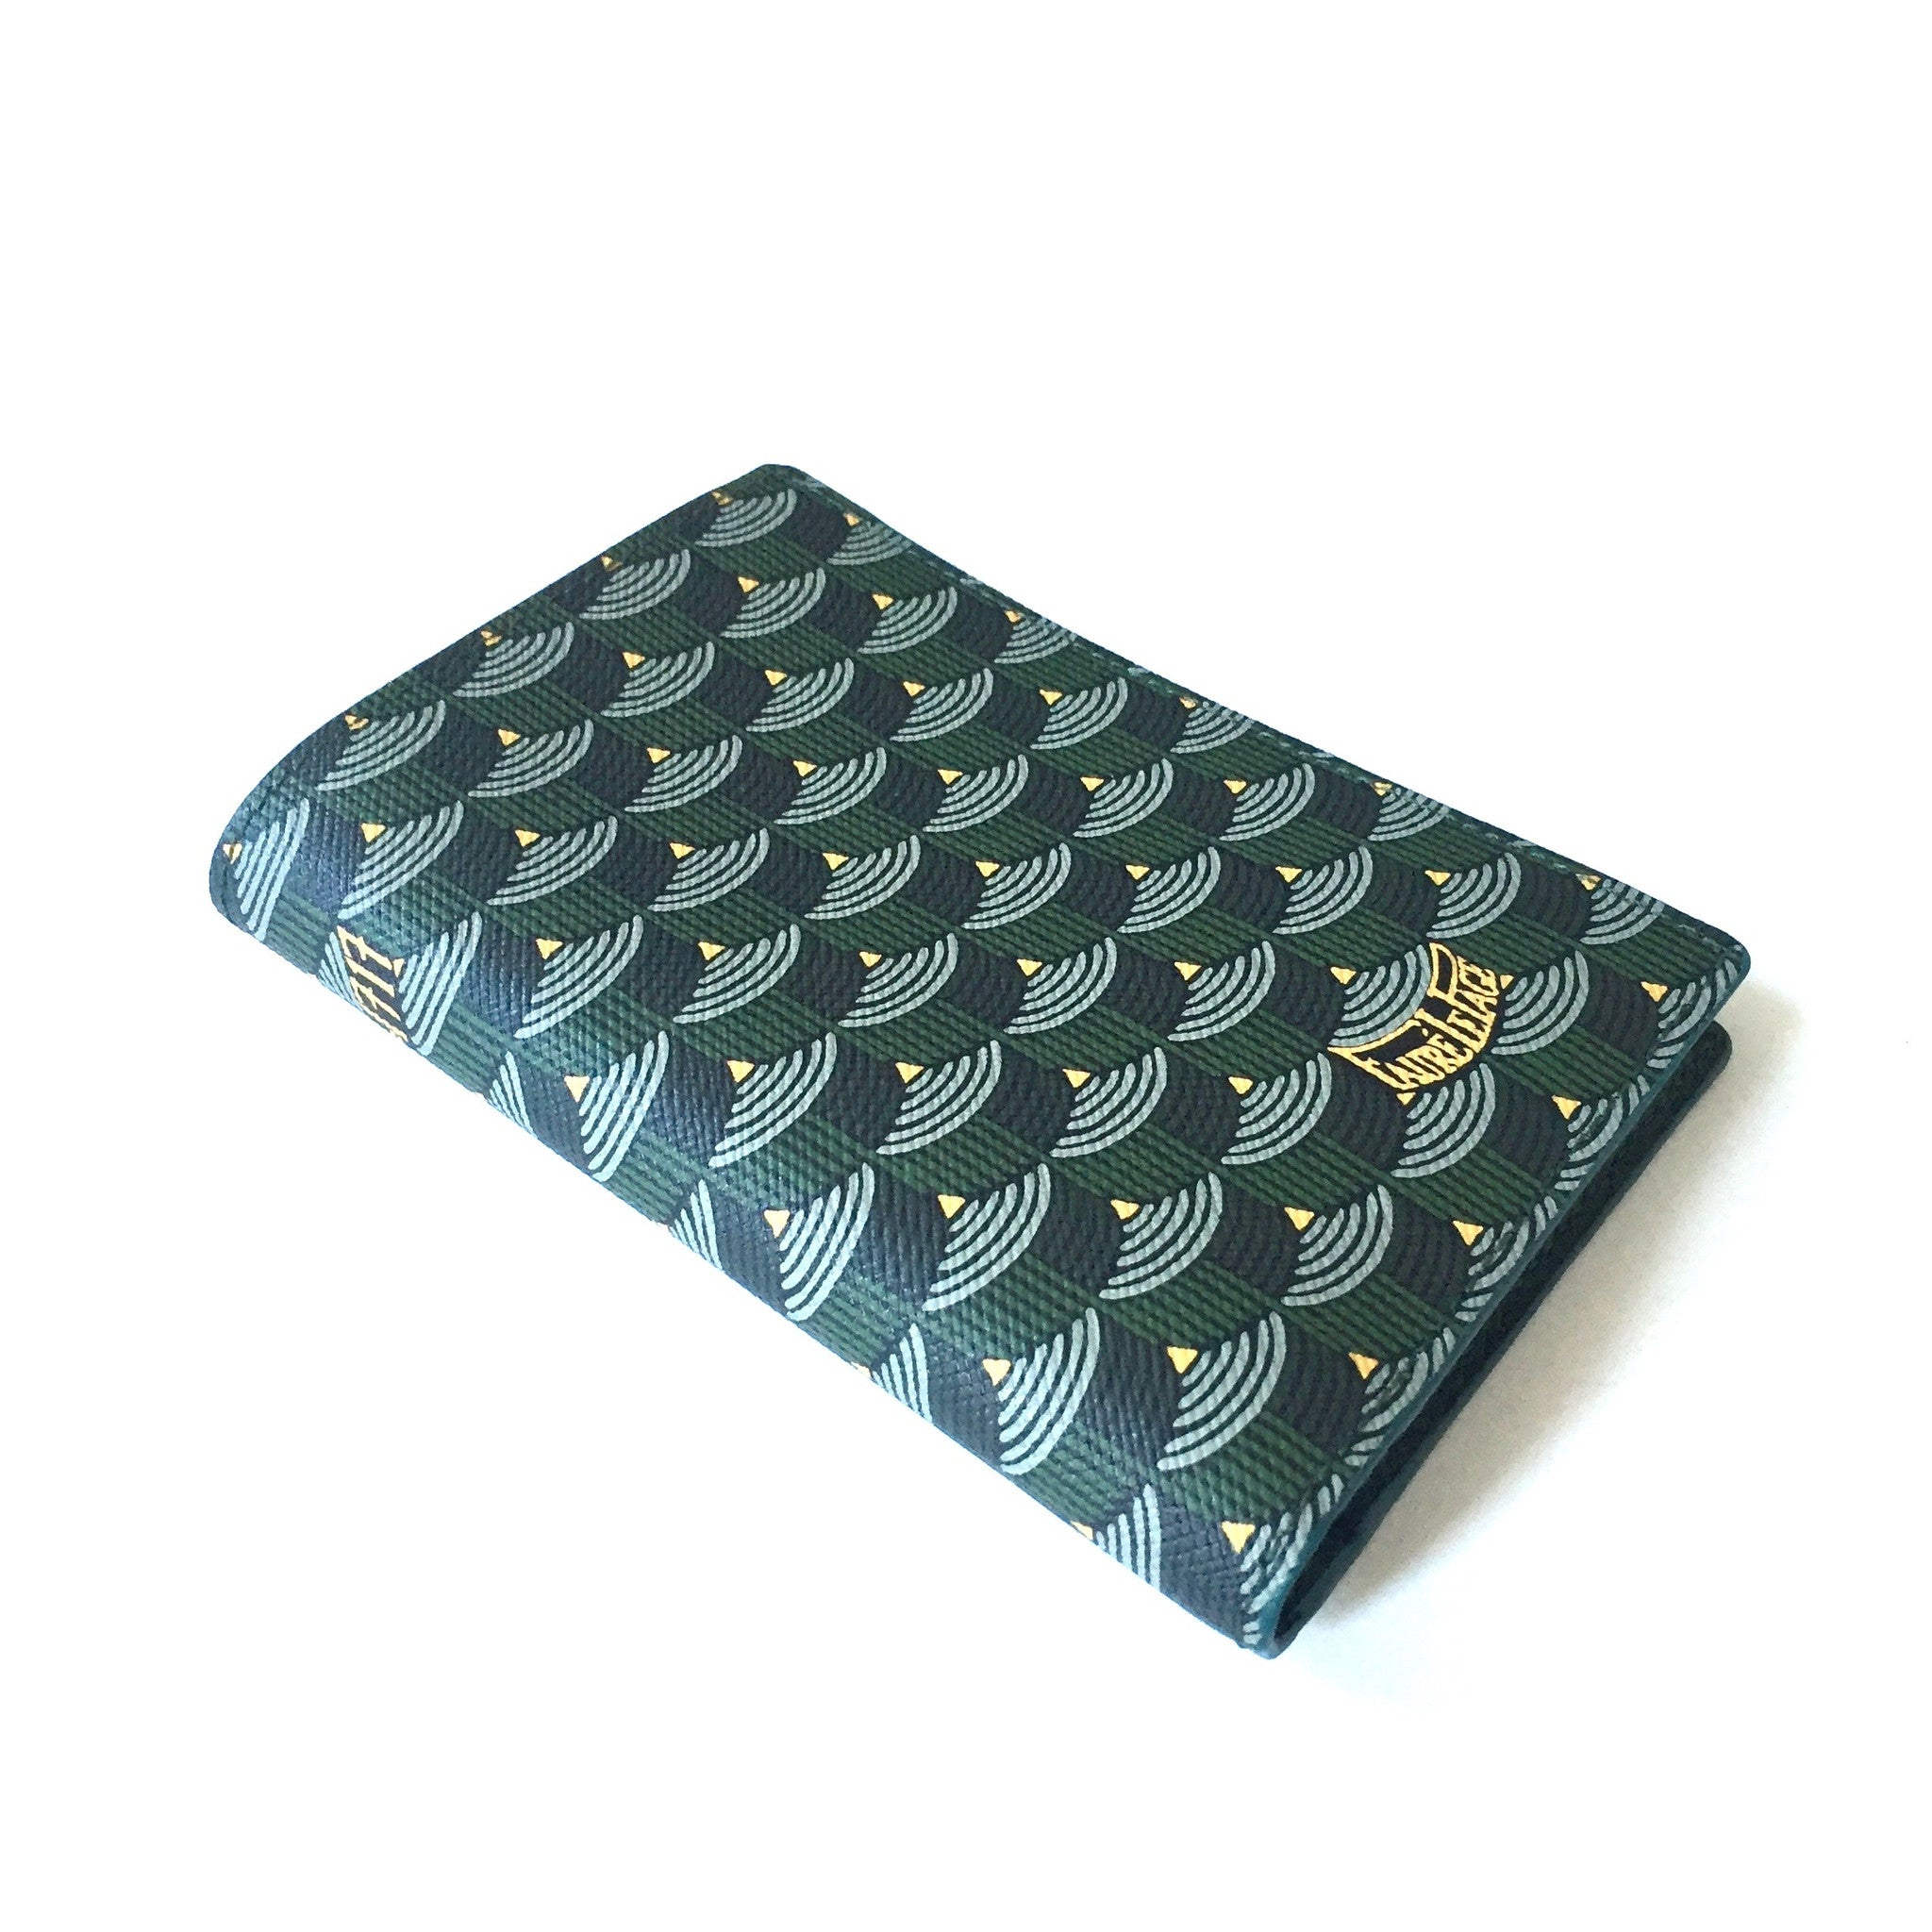 Faure Le Page - Empire Green 8CC Bifold Wallet